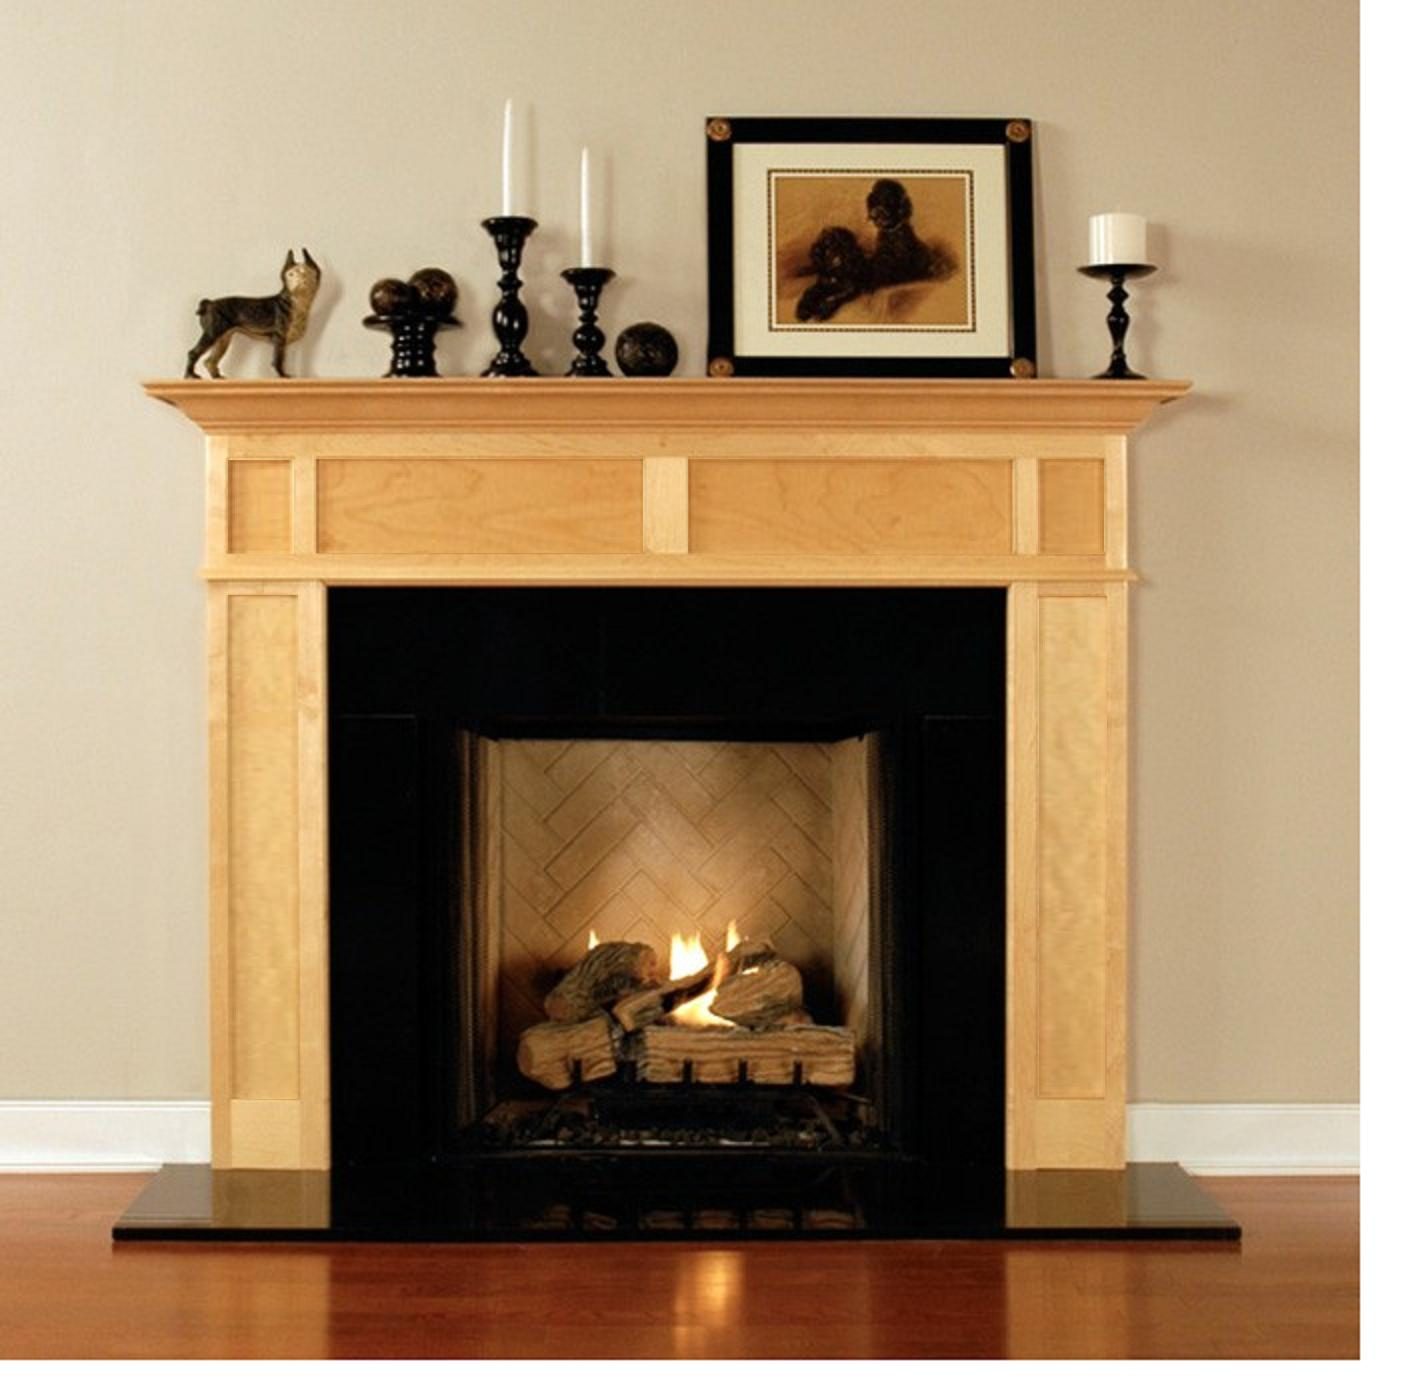 wood fireplace mantels for fireplaces surrounds design the space. Black Bedroom Furniture Sets. Home Design Ideas